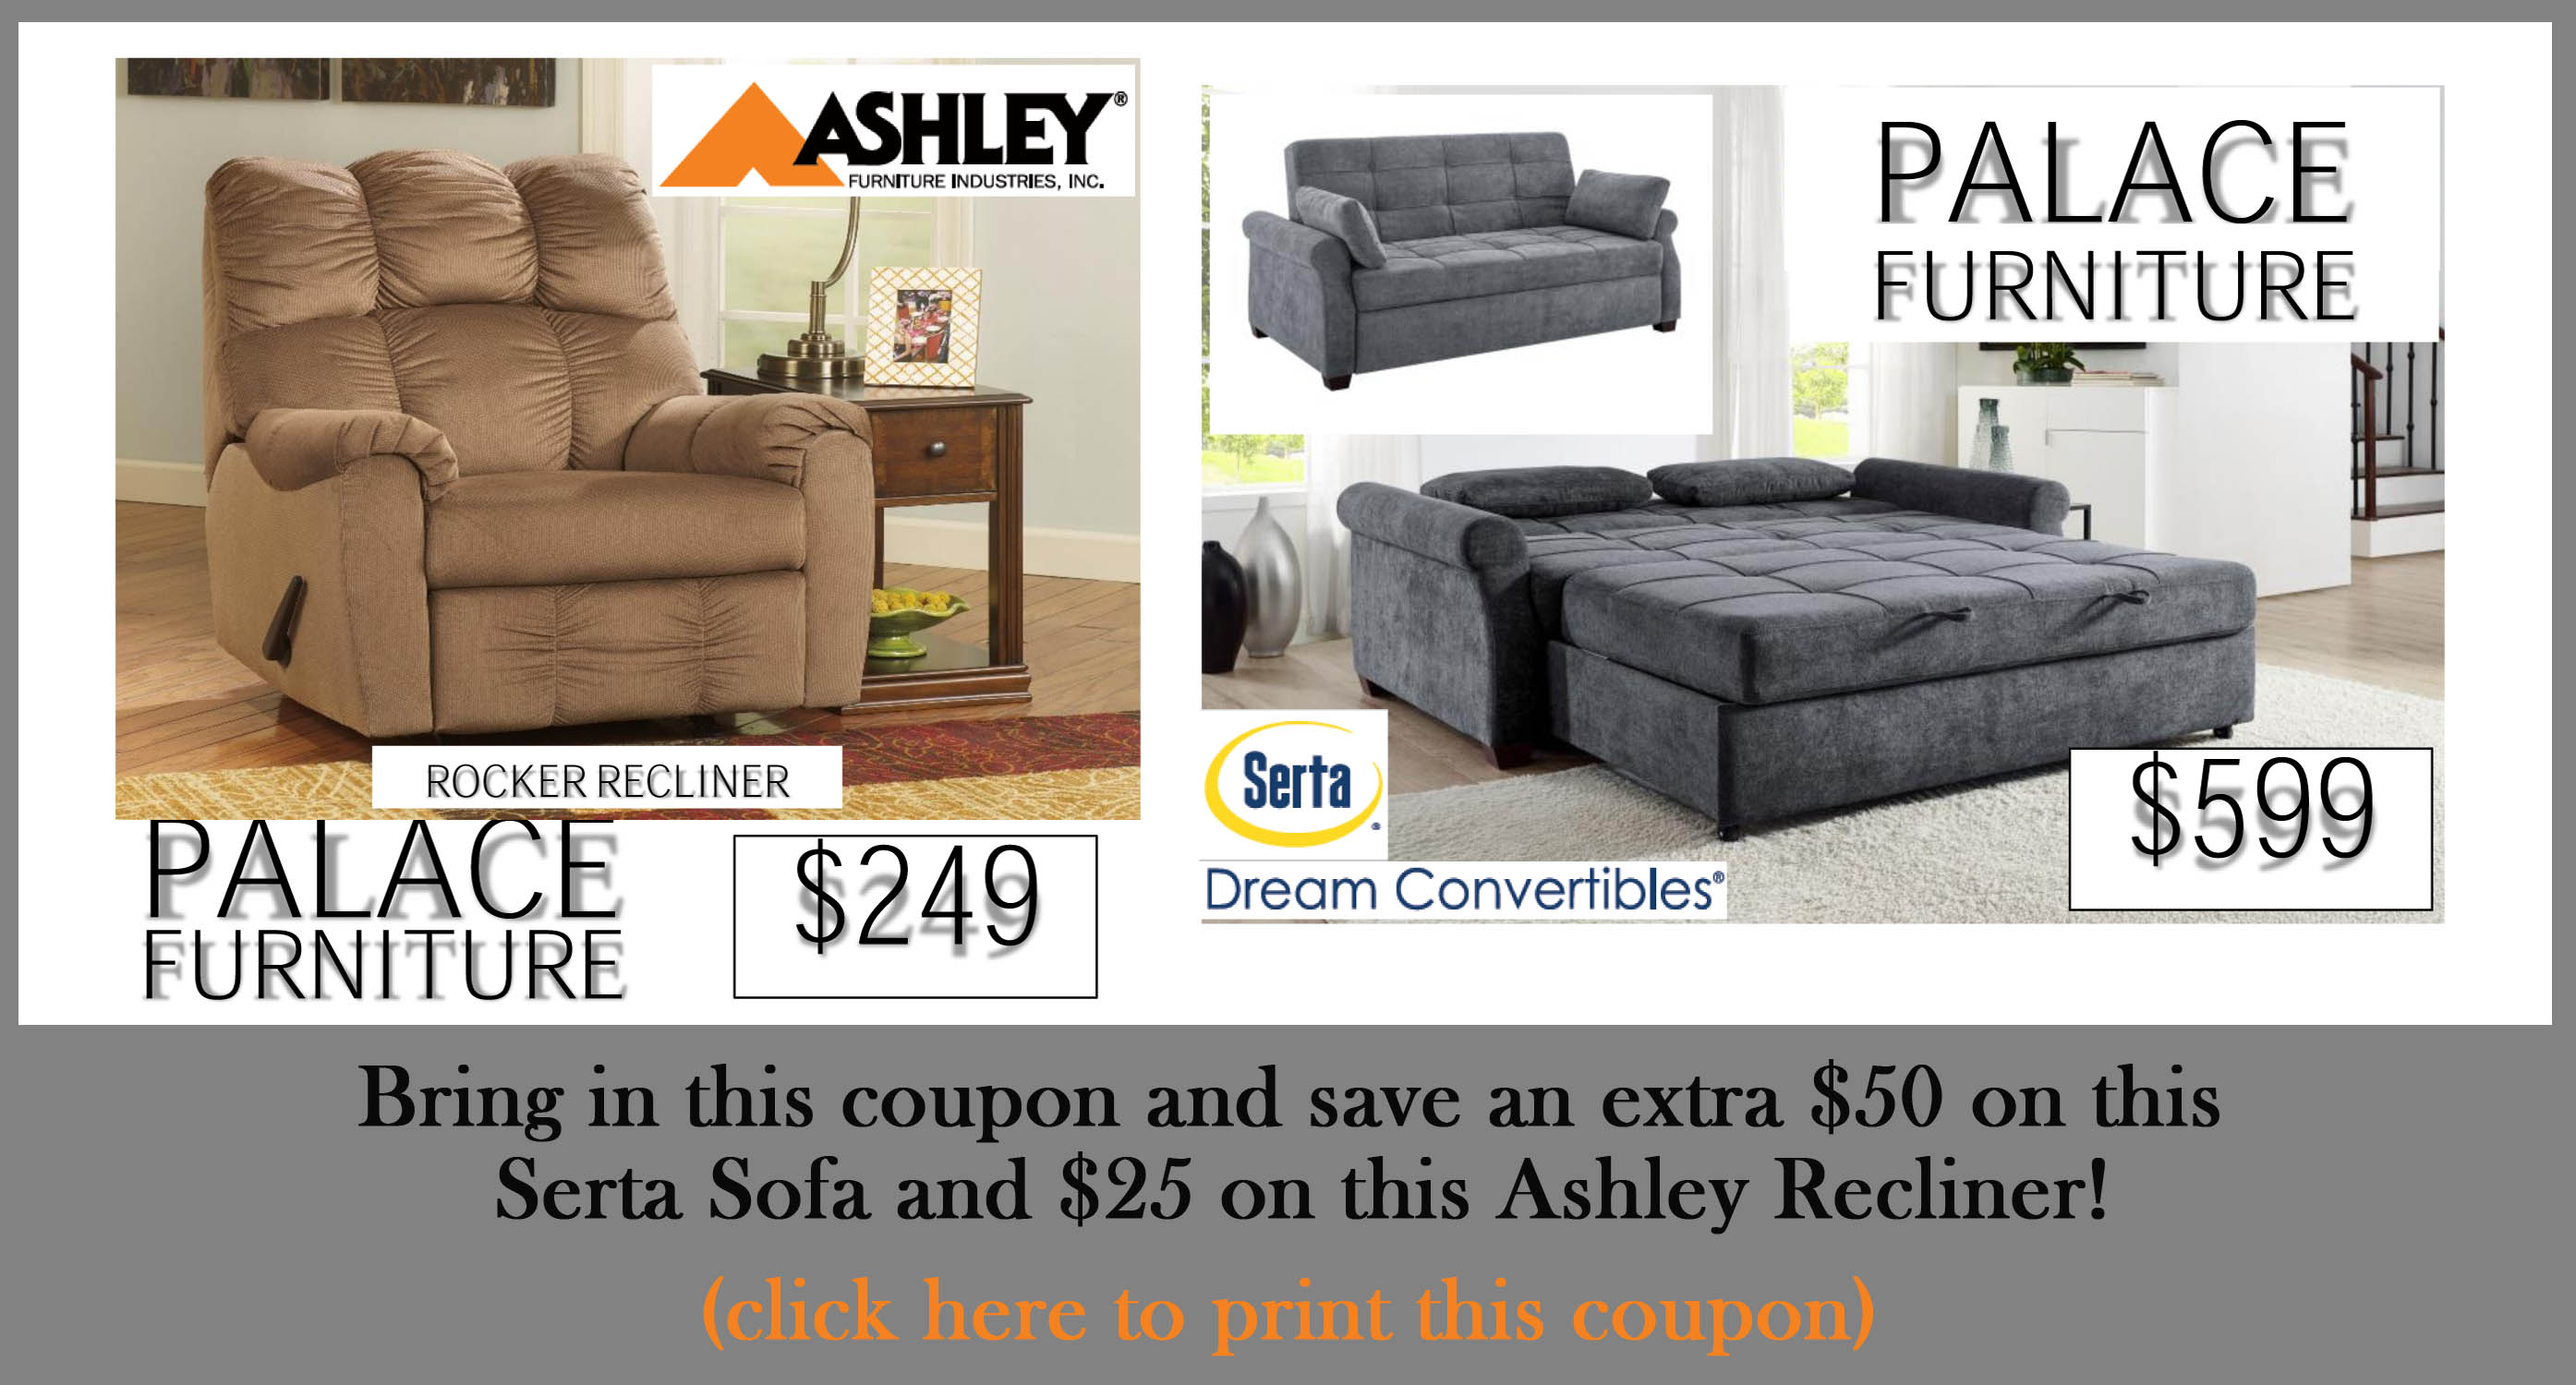 Furniture Sale Image Coupon